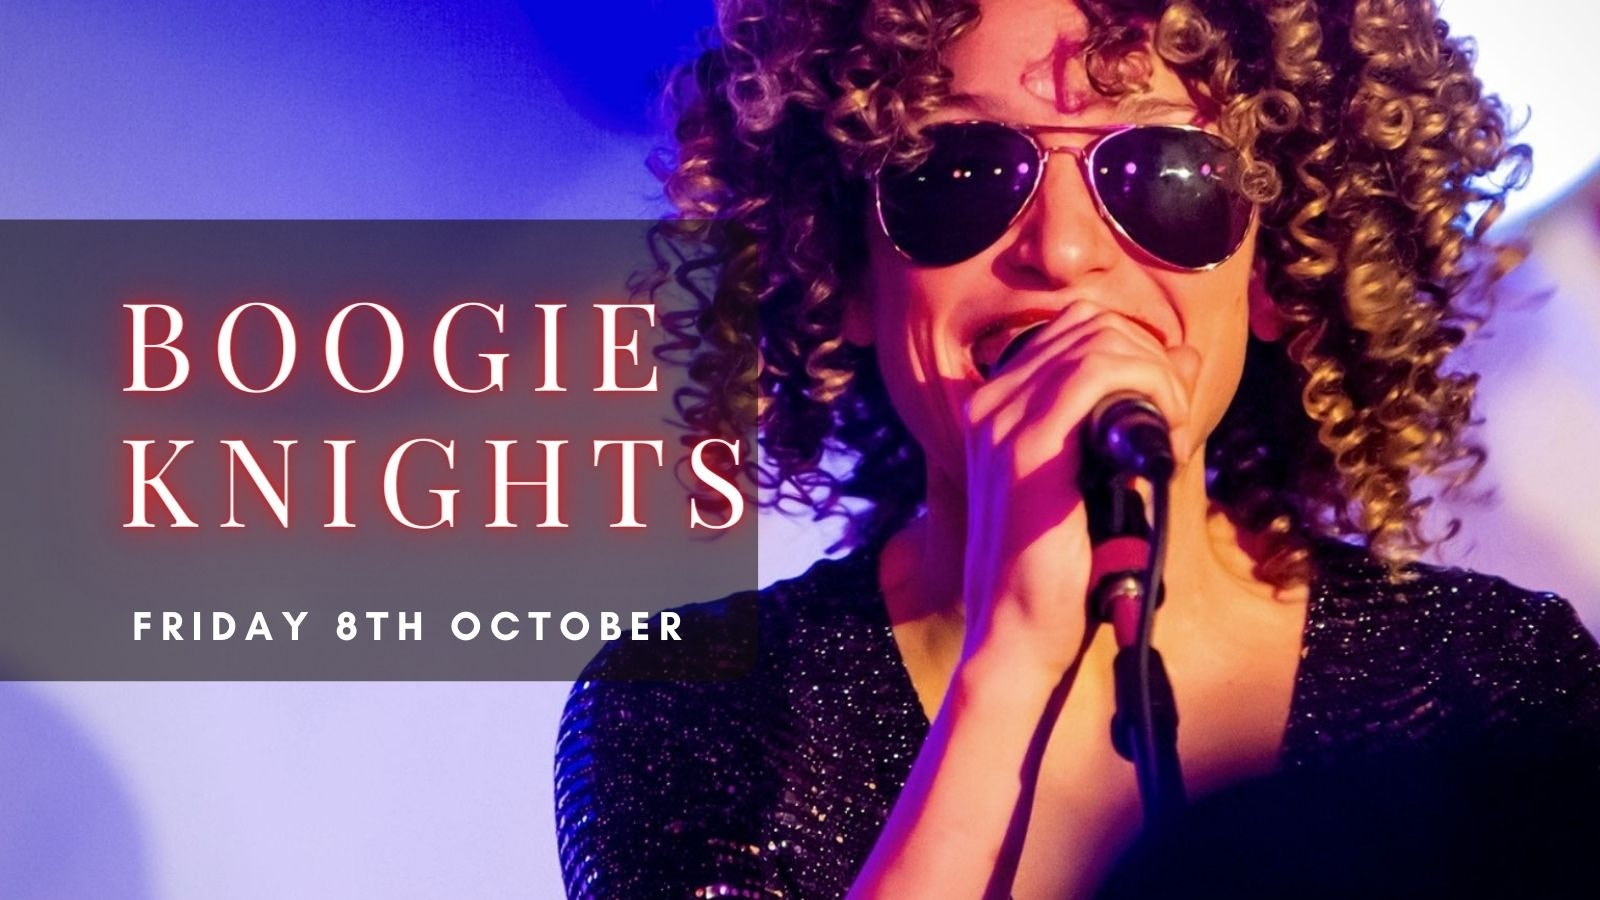 BOOGIE KNIGHTS | Plymouth, Annabel's Cabaret & Discotheque